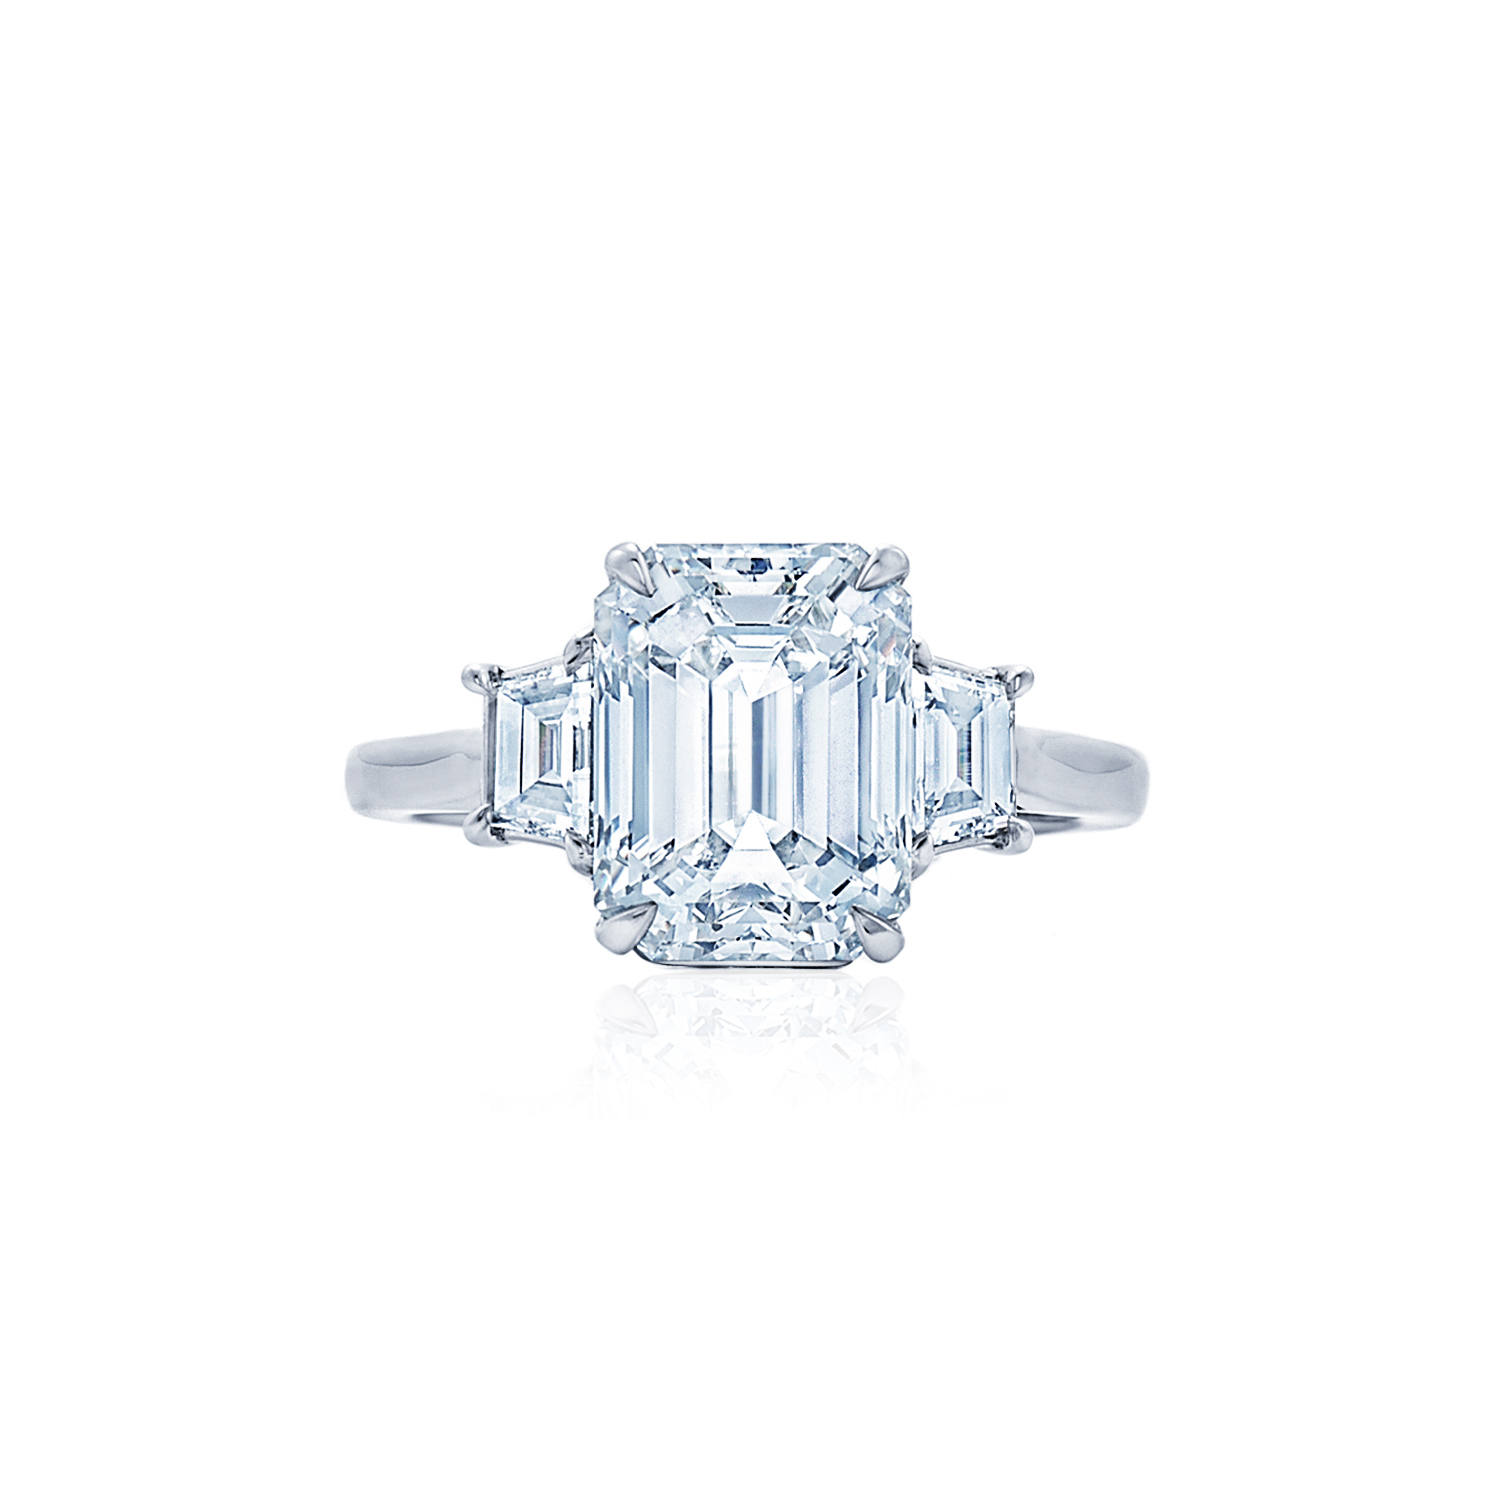 the crop harry diamond ring false shop upscale rings emerald cut engagement classico scale product subsampling kotlar